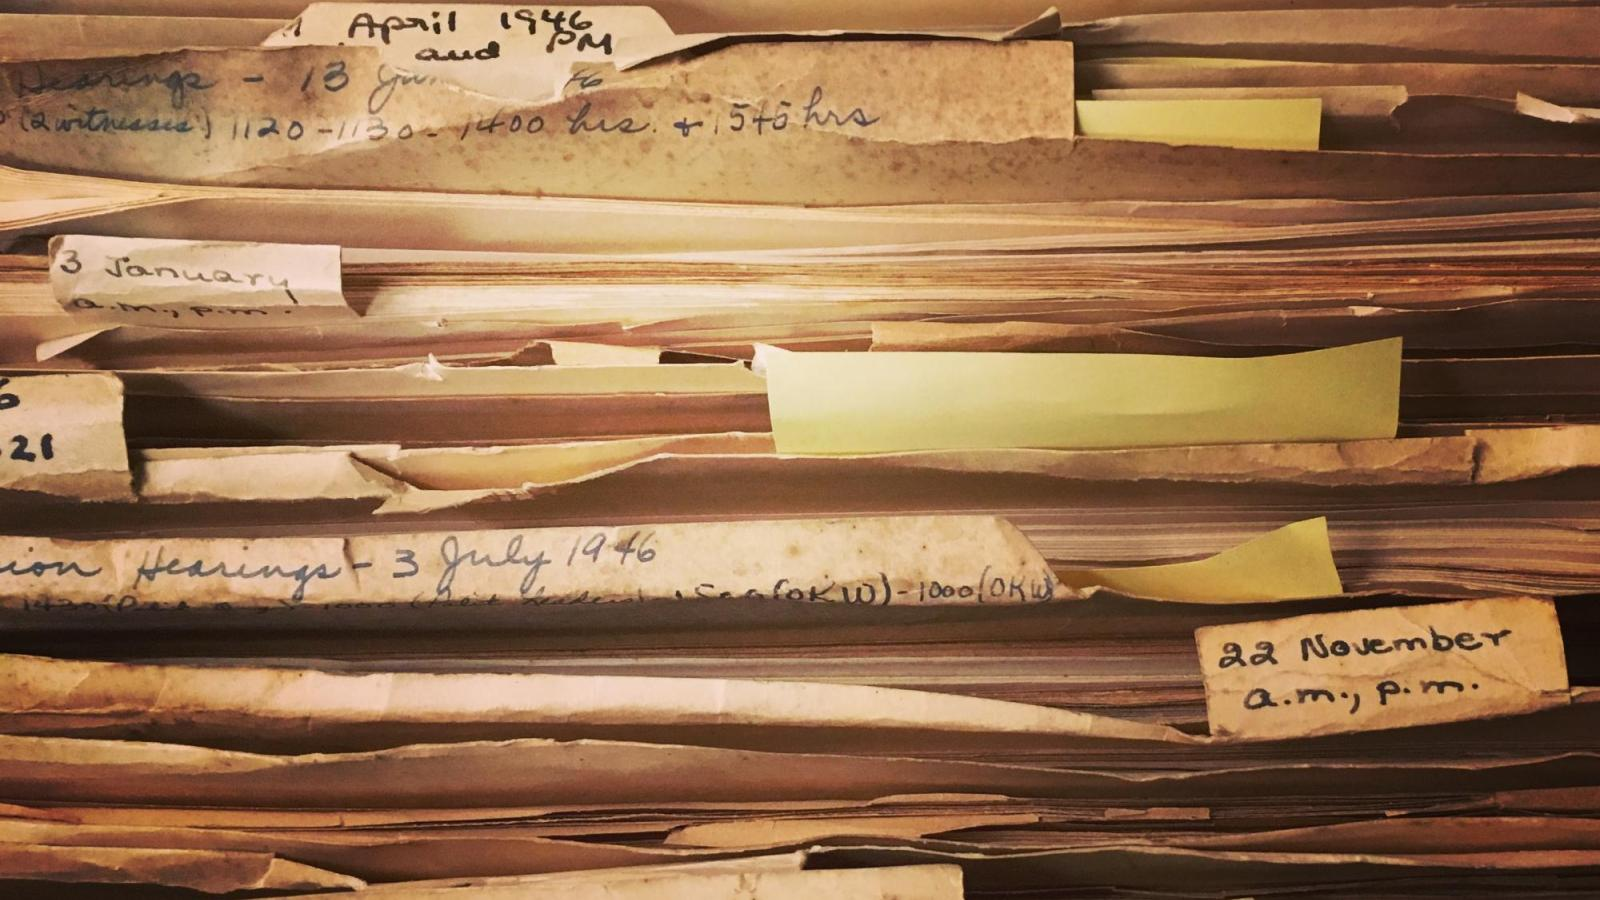 Files from the Mazel Holocaust Collection